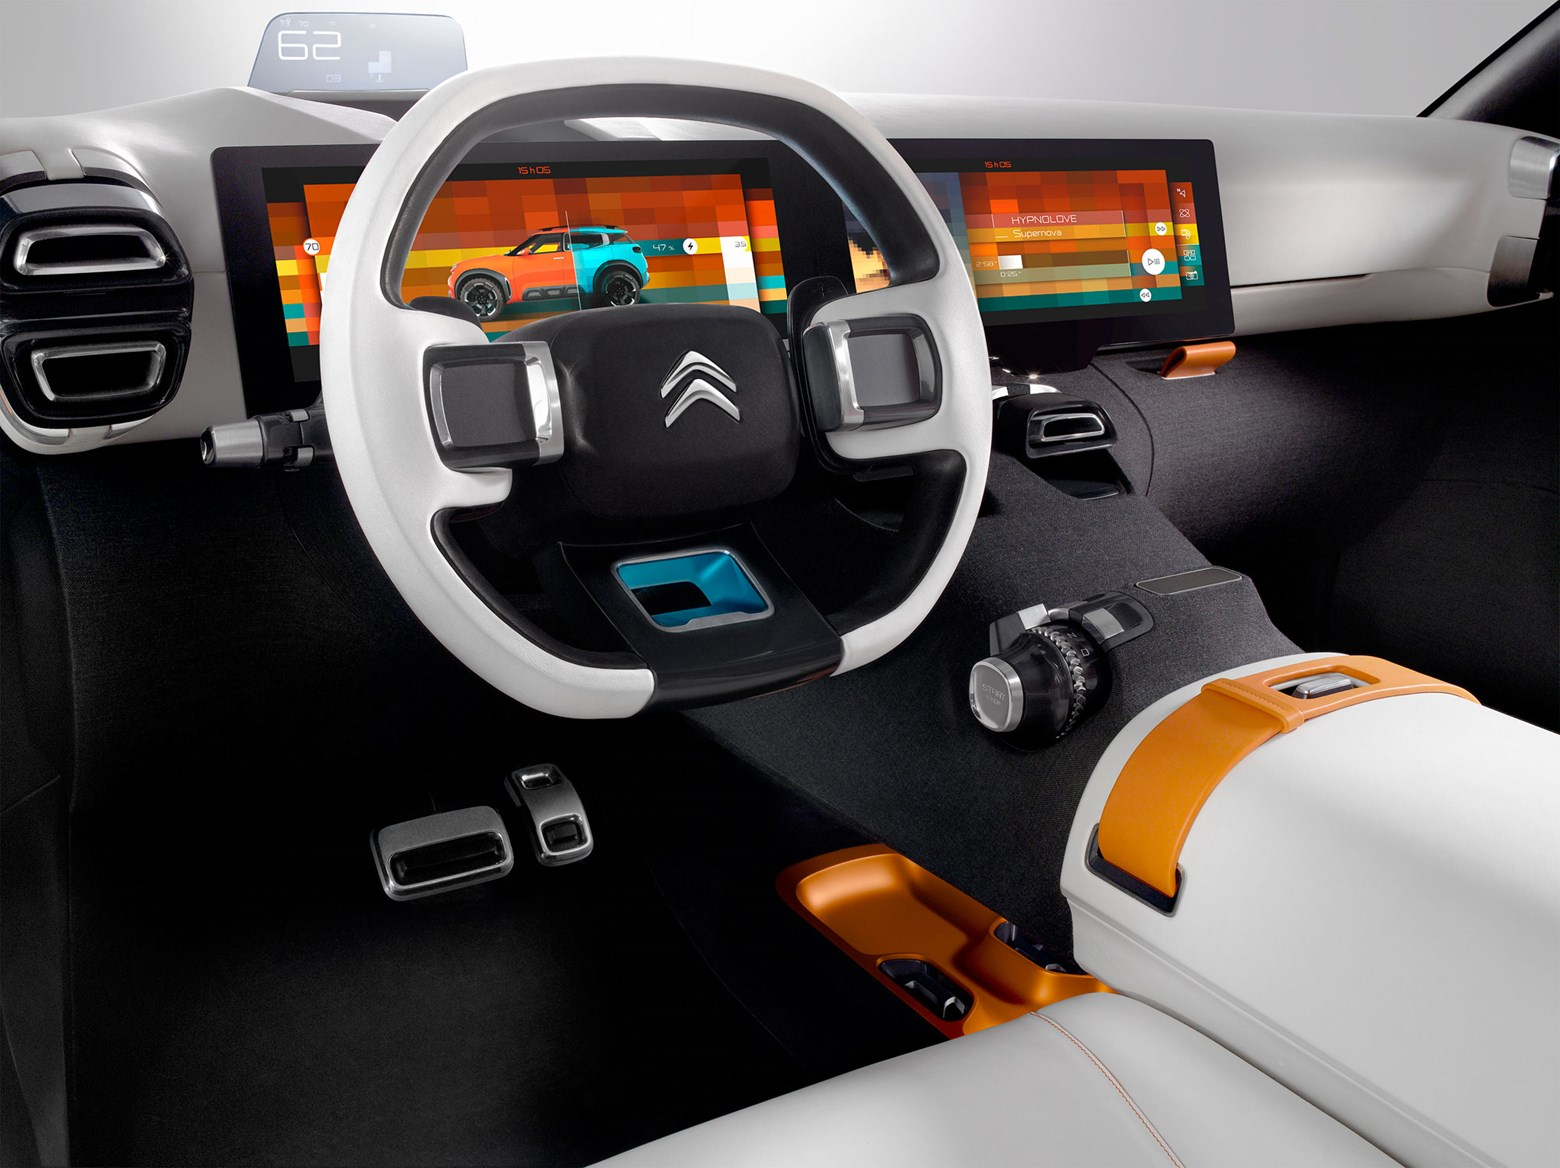 astounding-design-of-the-citroen-c4-2015-interior-with-white-dash-and-white-seats-ideas-with-black-accent